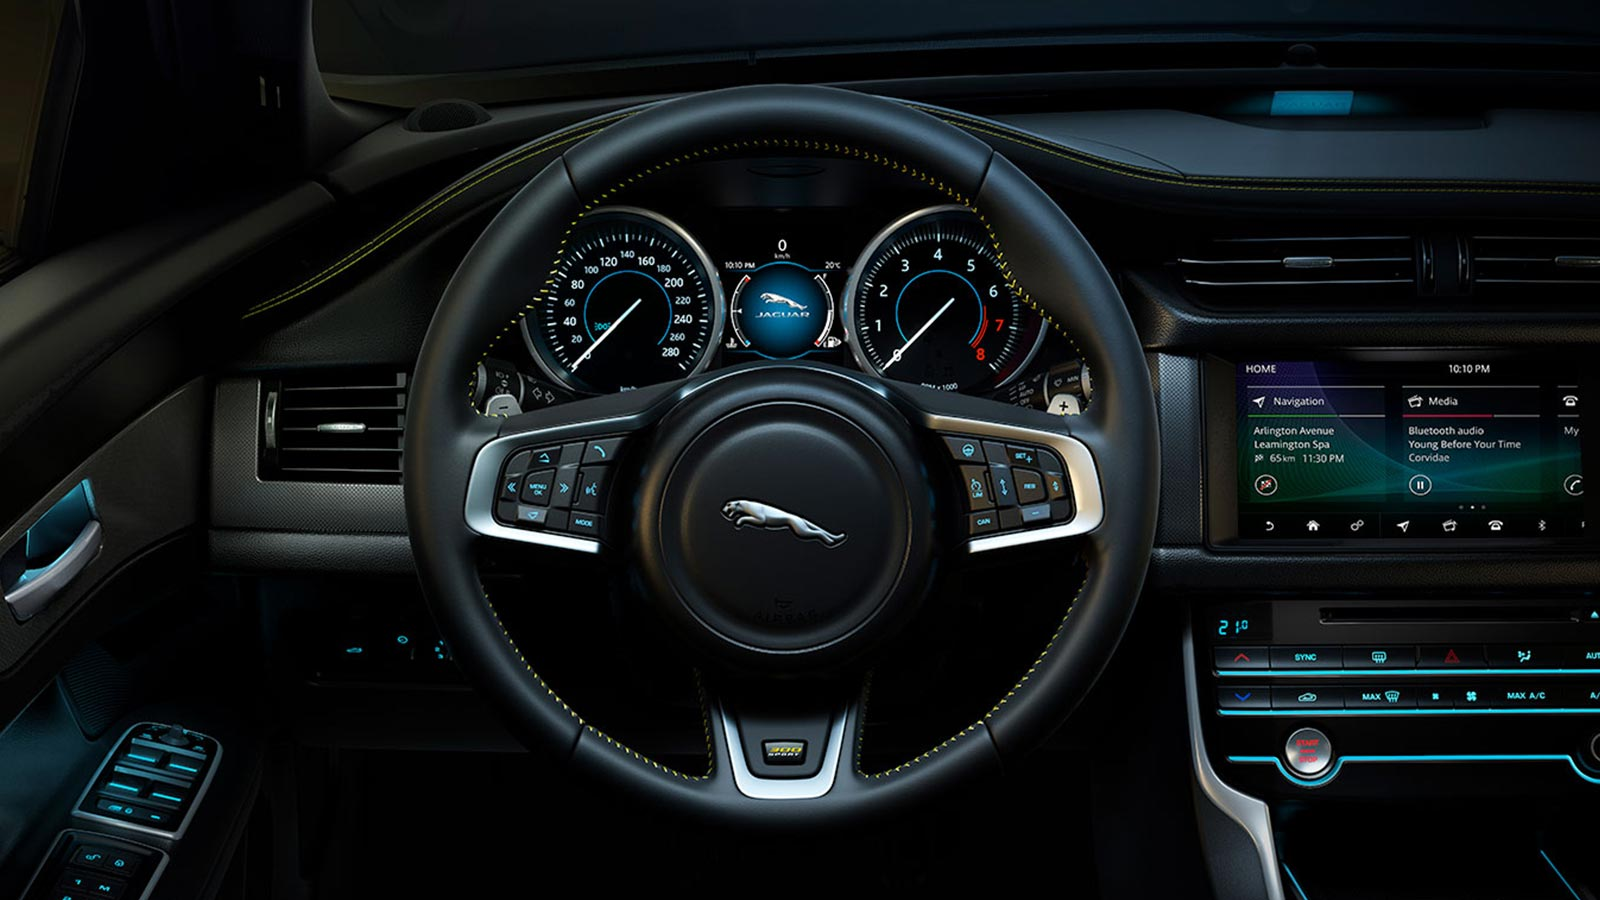 Jaguar XF Interior shot showing the steering wheel.